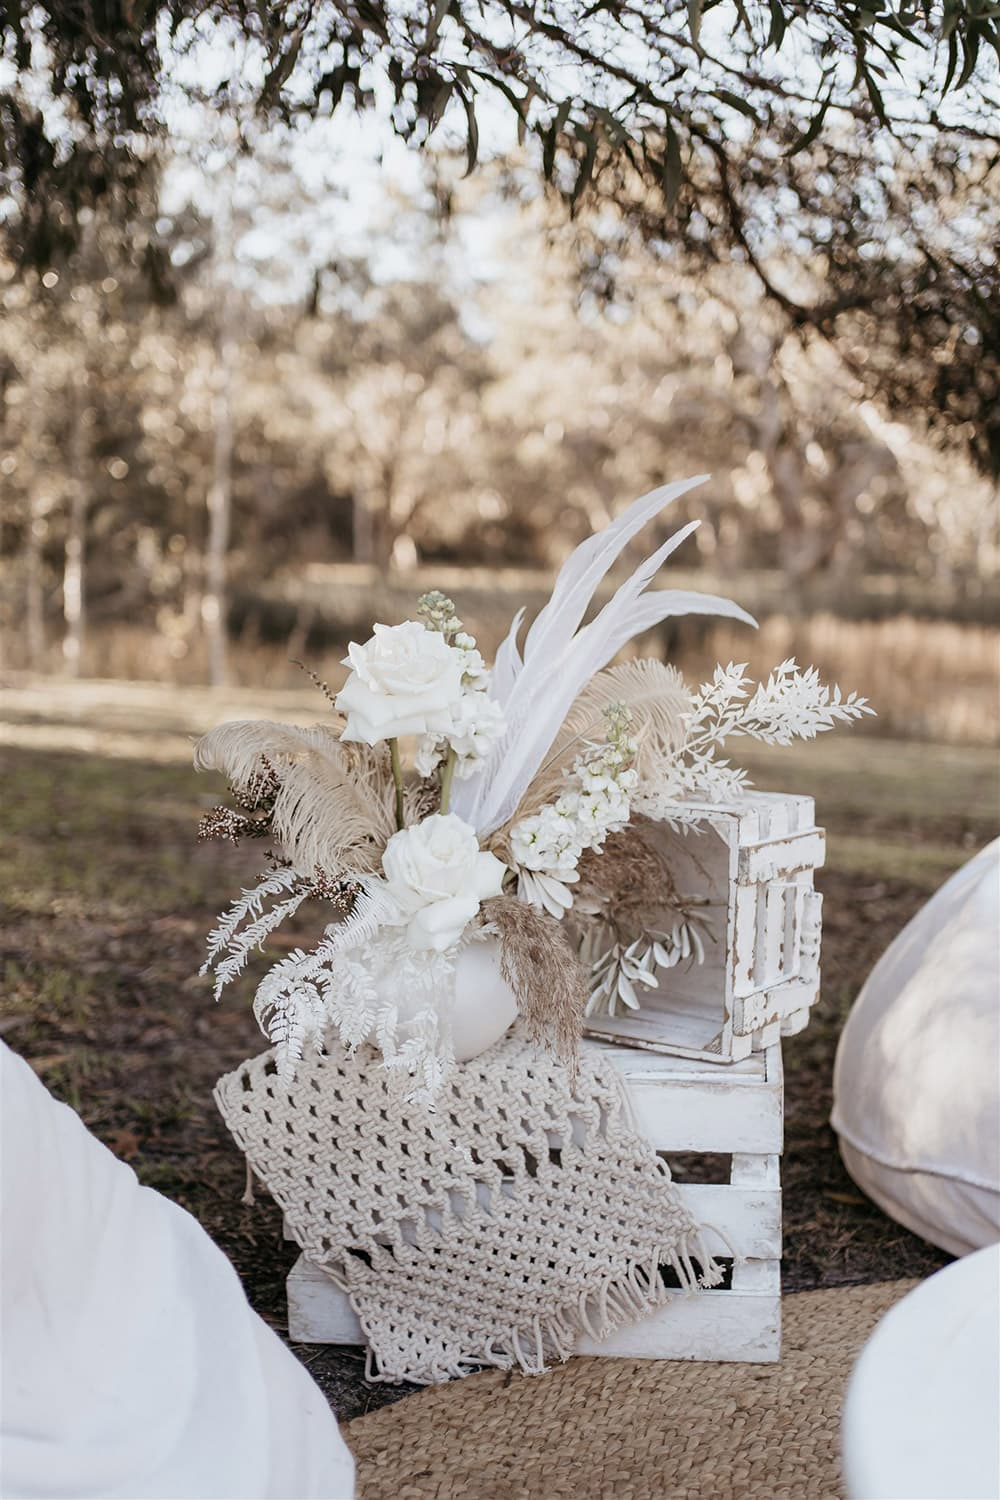 Outdoor Festival Bohemian Wedding Inspiration   Rustic white stacked crates are decorated with a macrame runner and small vase of white and neutral flowers, feathers and foliage for a boho outdoor cocktail style wedding reception.   Photography: Shae Estella Photo